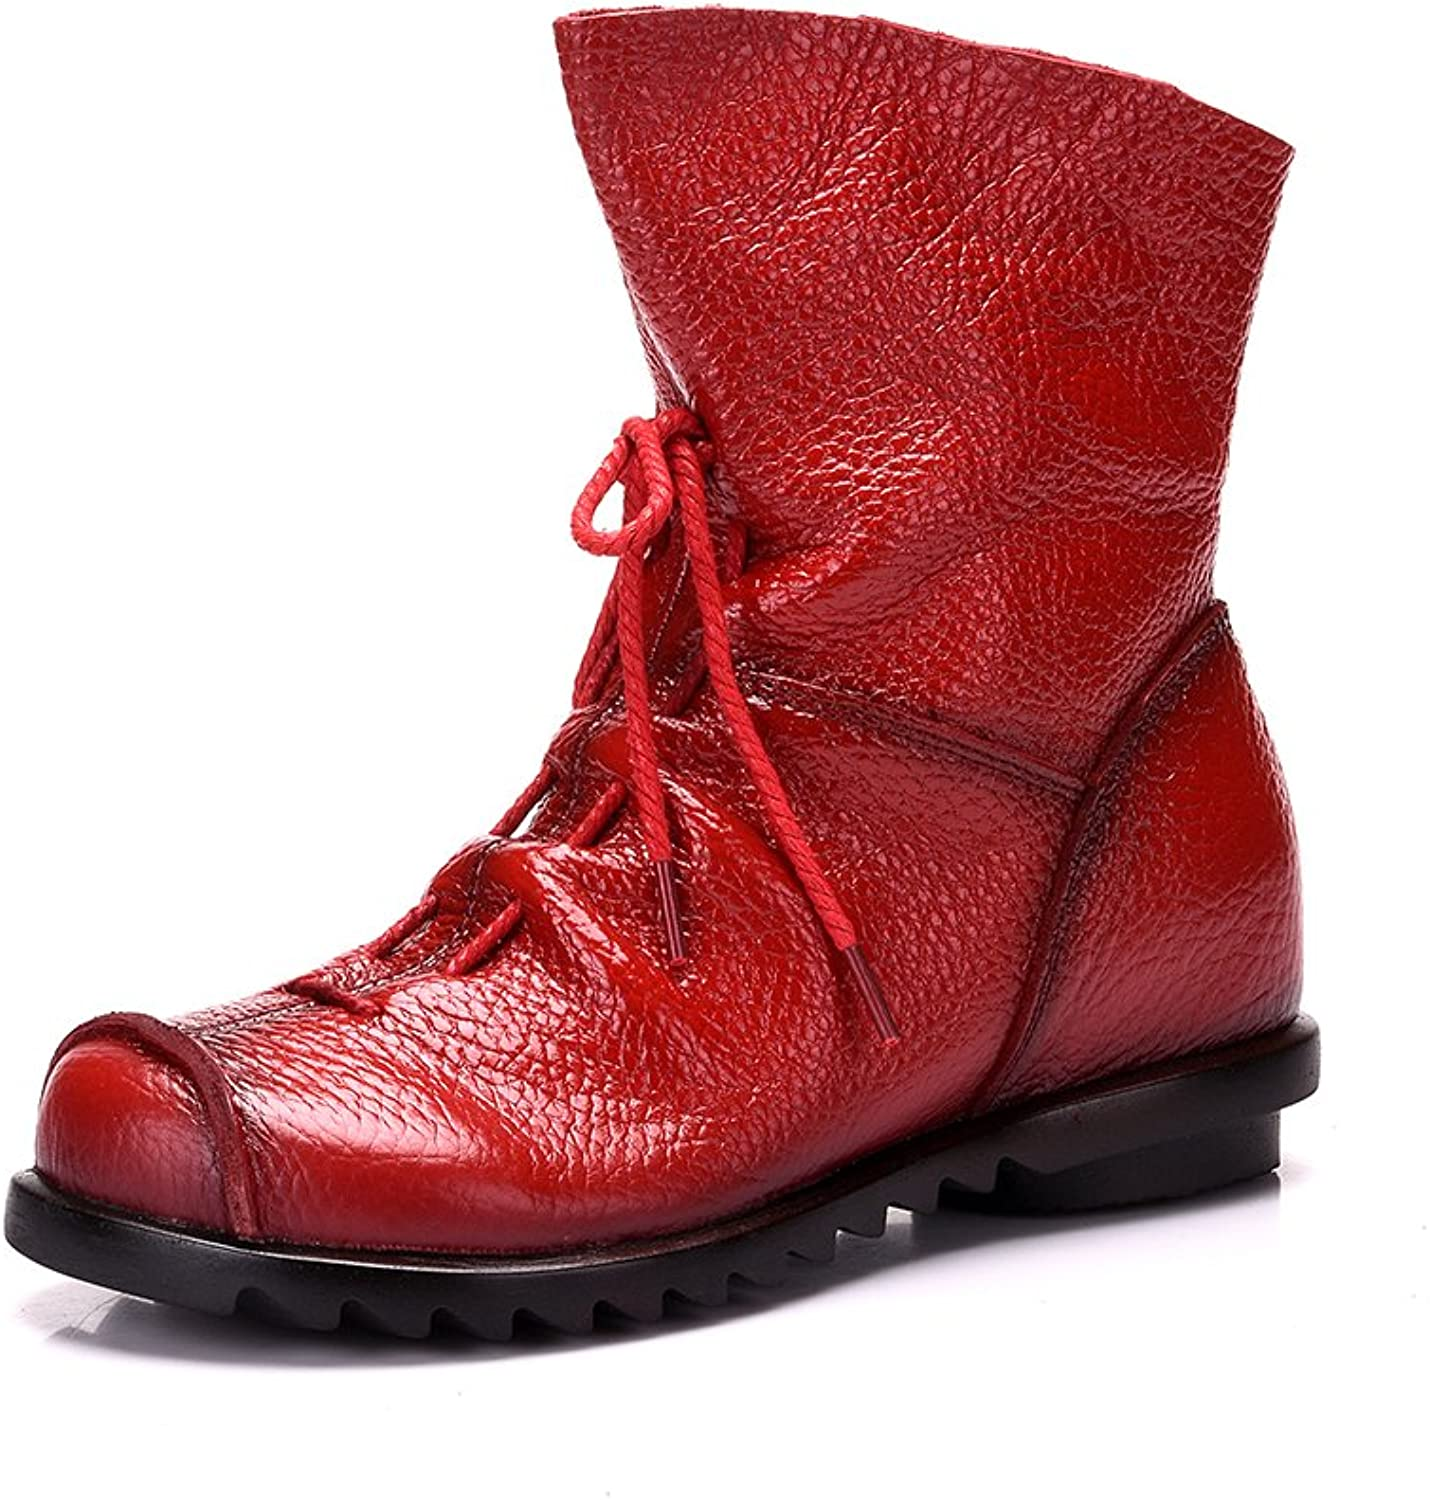 Duberess Women's Side Zipper Real Leather Ankle Toe Cap Boot